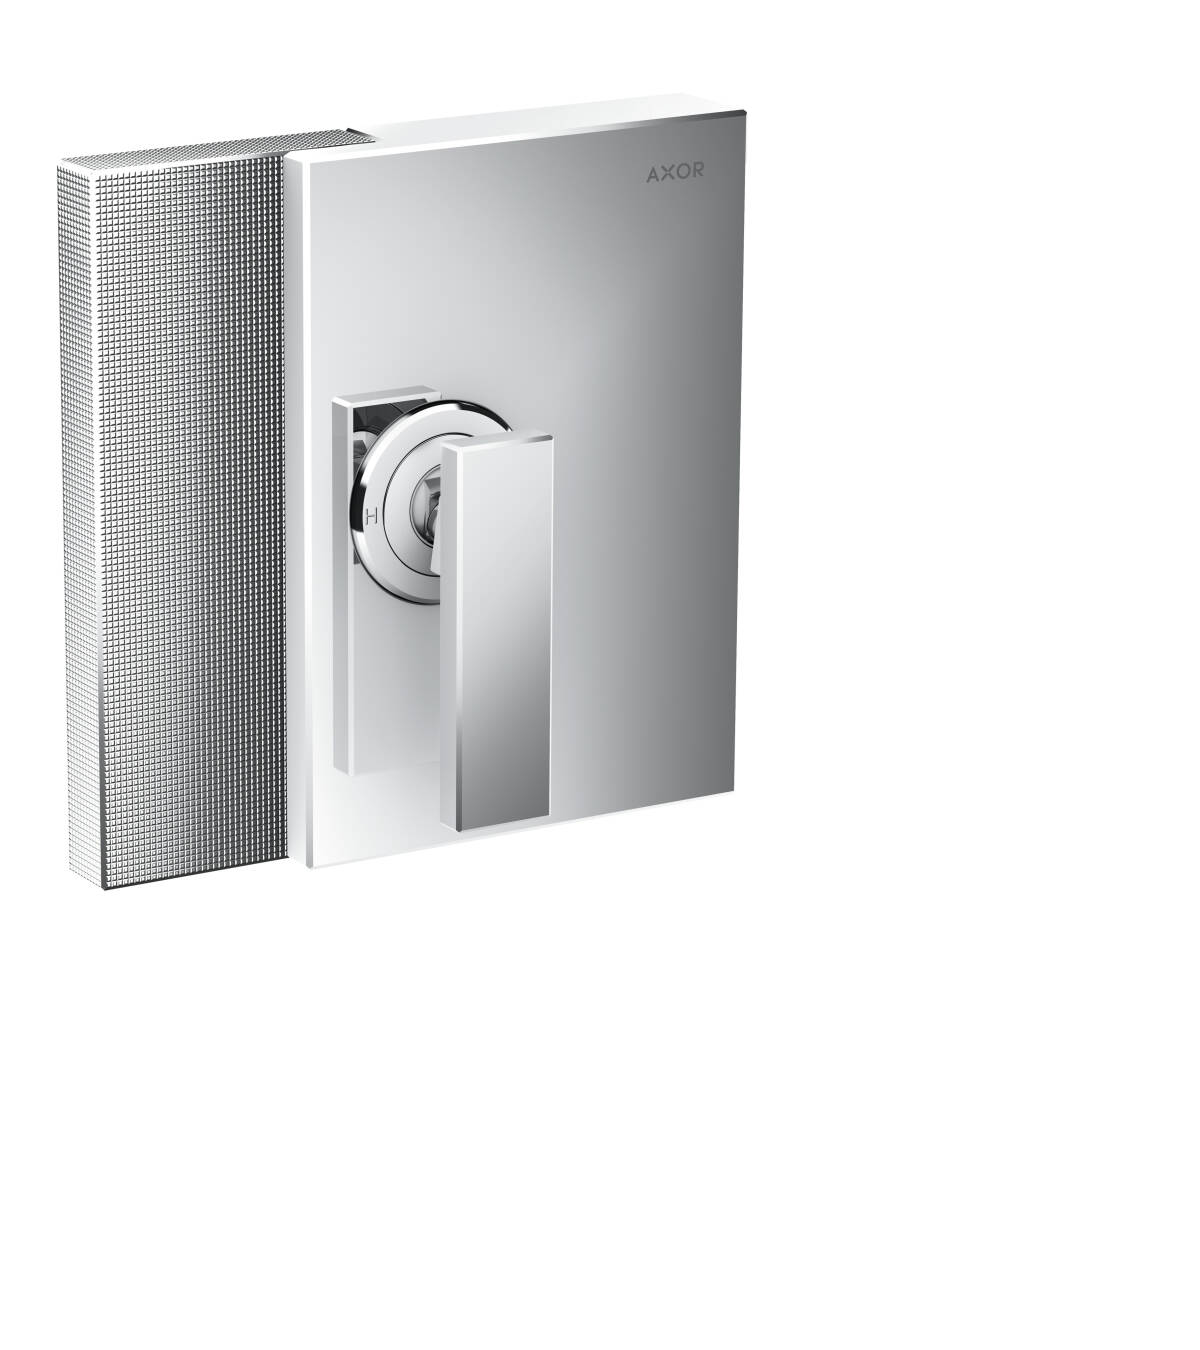 Single lever shower mixer for concealed installation - diamond cut, Chrome, 46651000